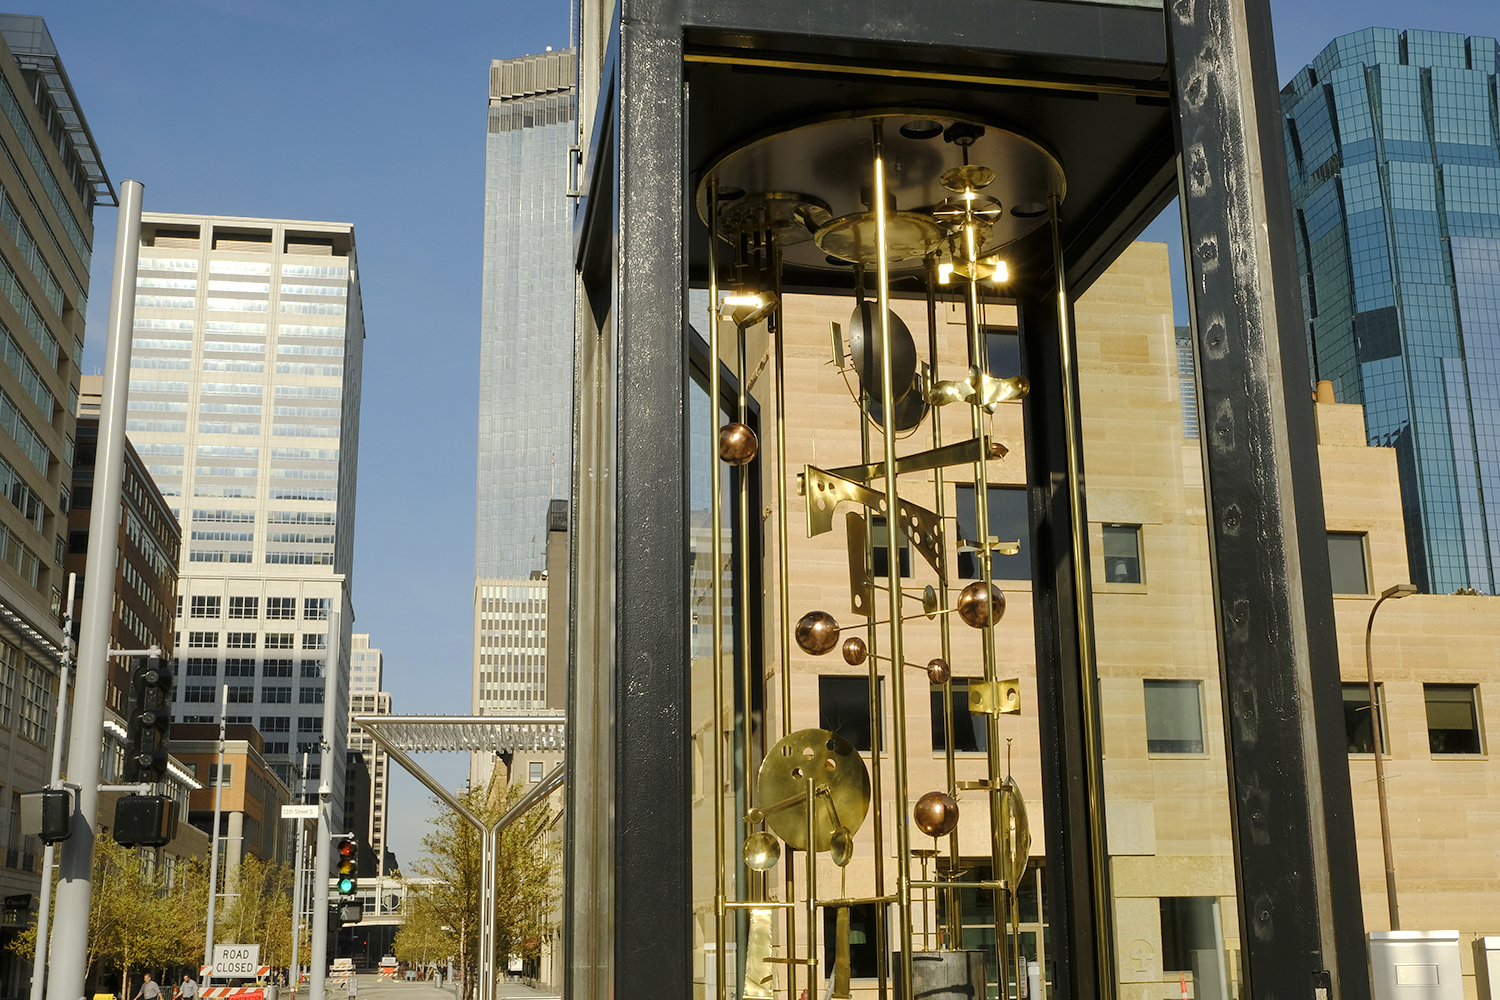 Sculpture Clock returns to Nicollet, restored 2017